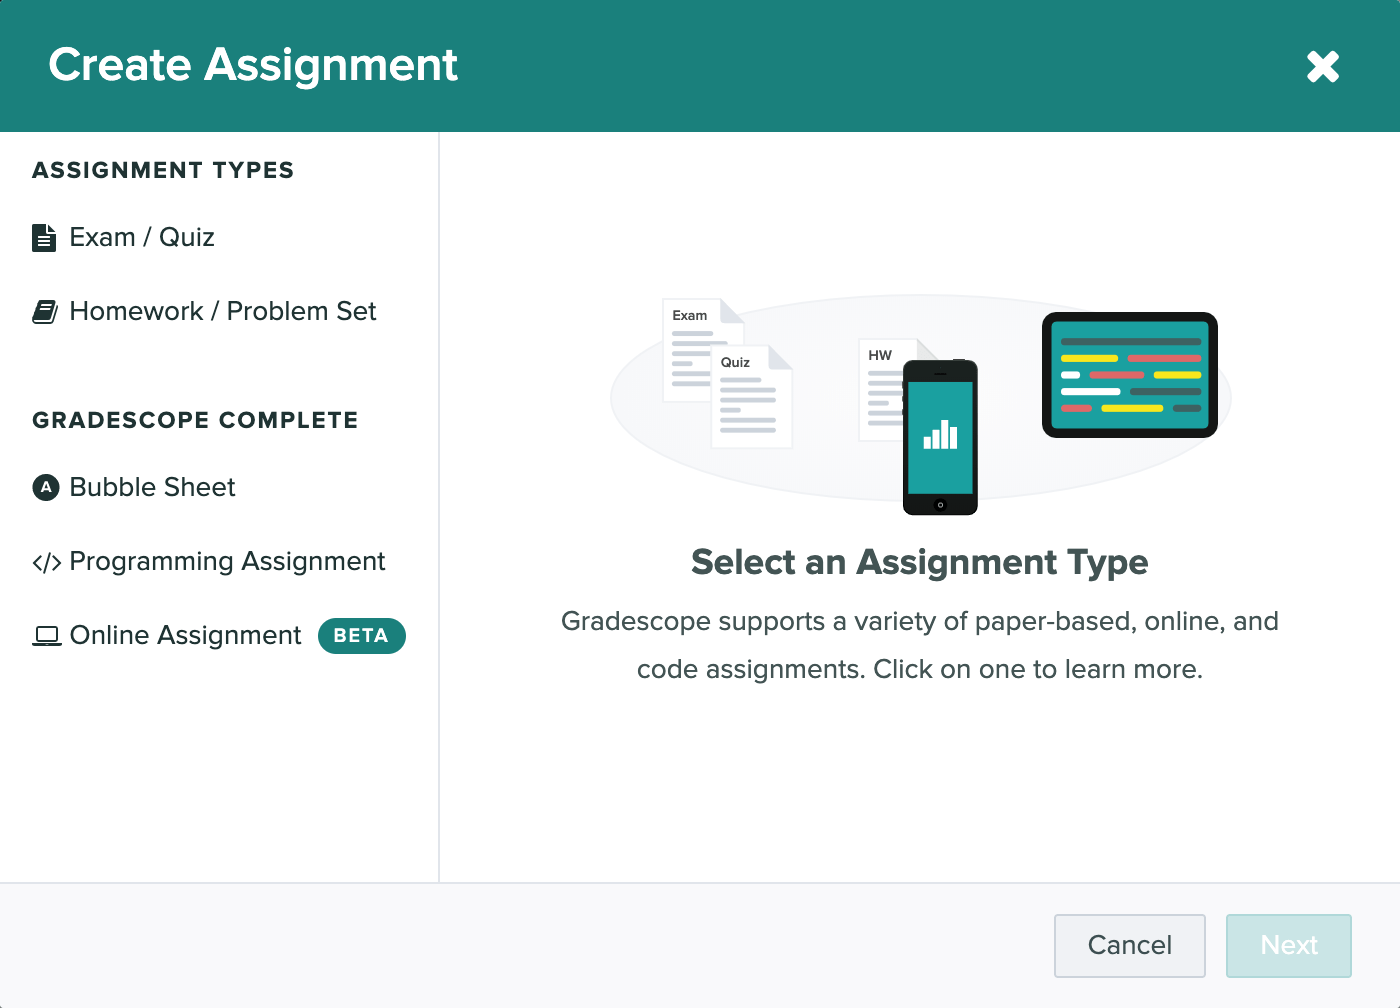 The create assignment modal is open showing the variety of assignments assignment types supported.